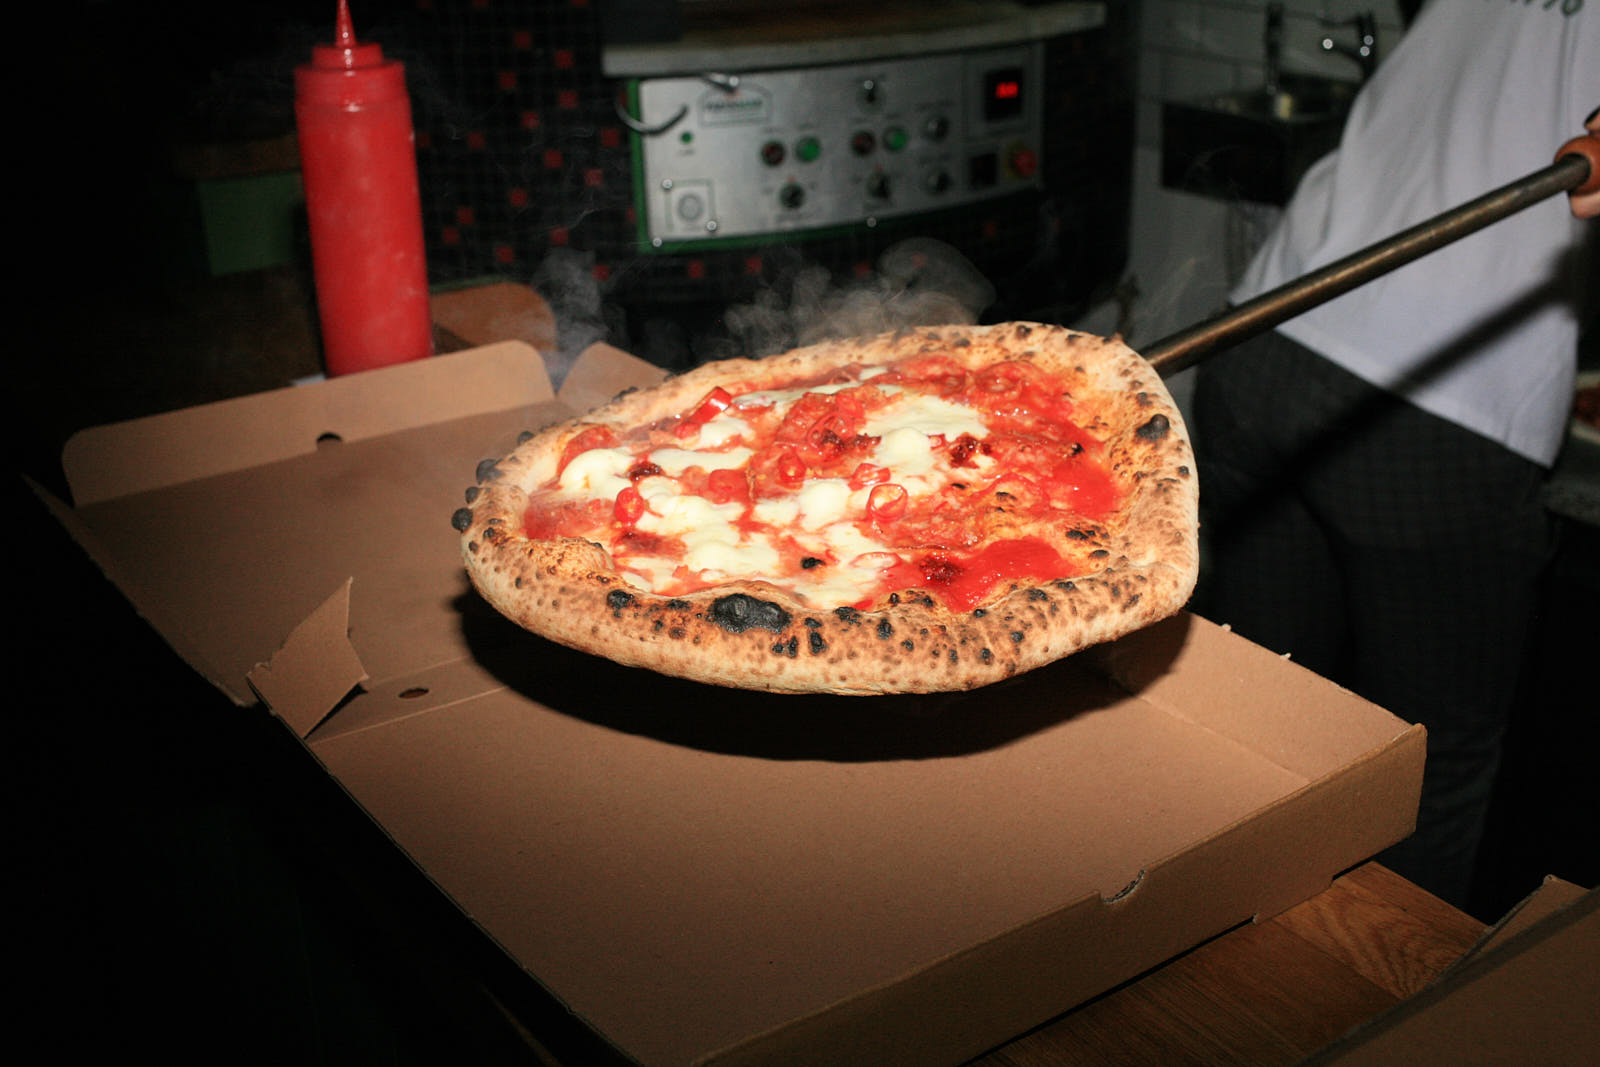 Takeaway pizzas up at Gordos in Dalston —one of the best pizzerias to get takeaway in London for November lockdown